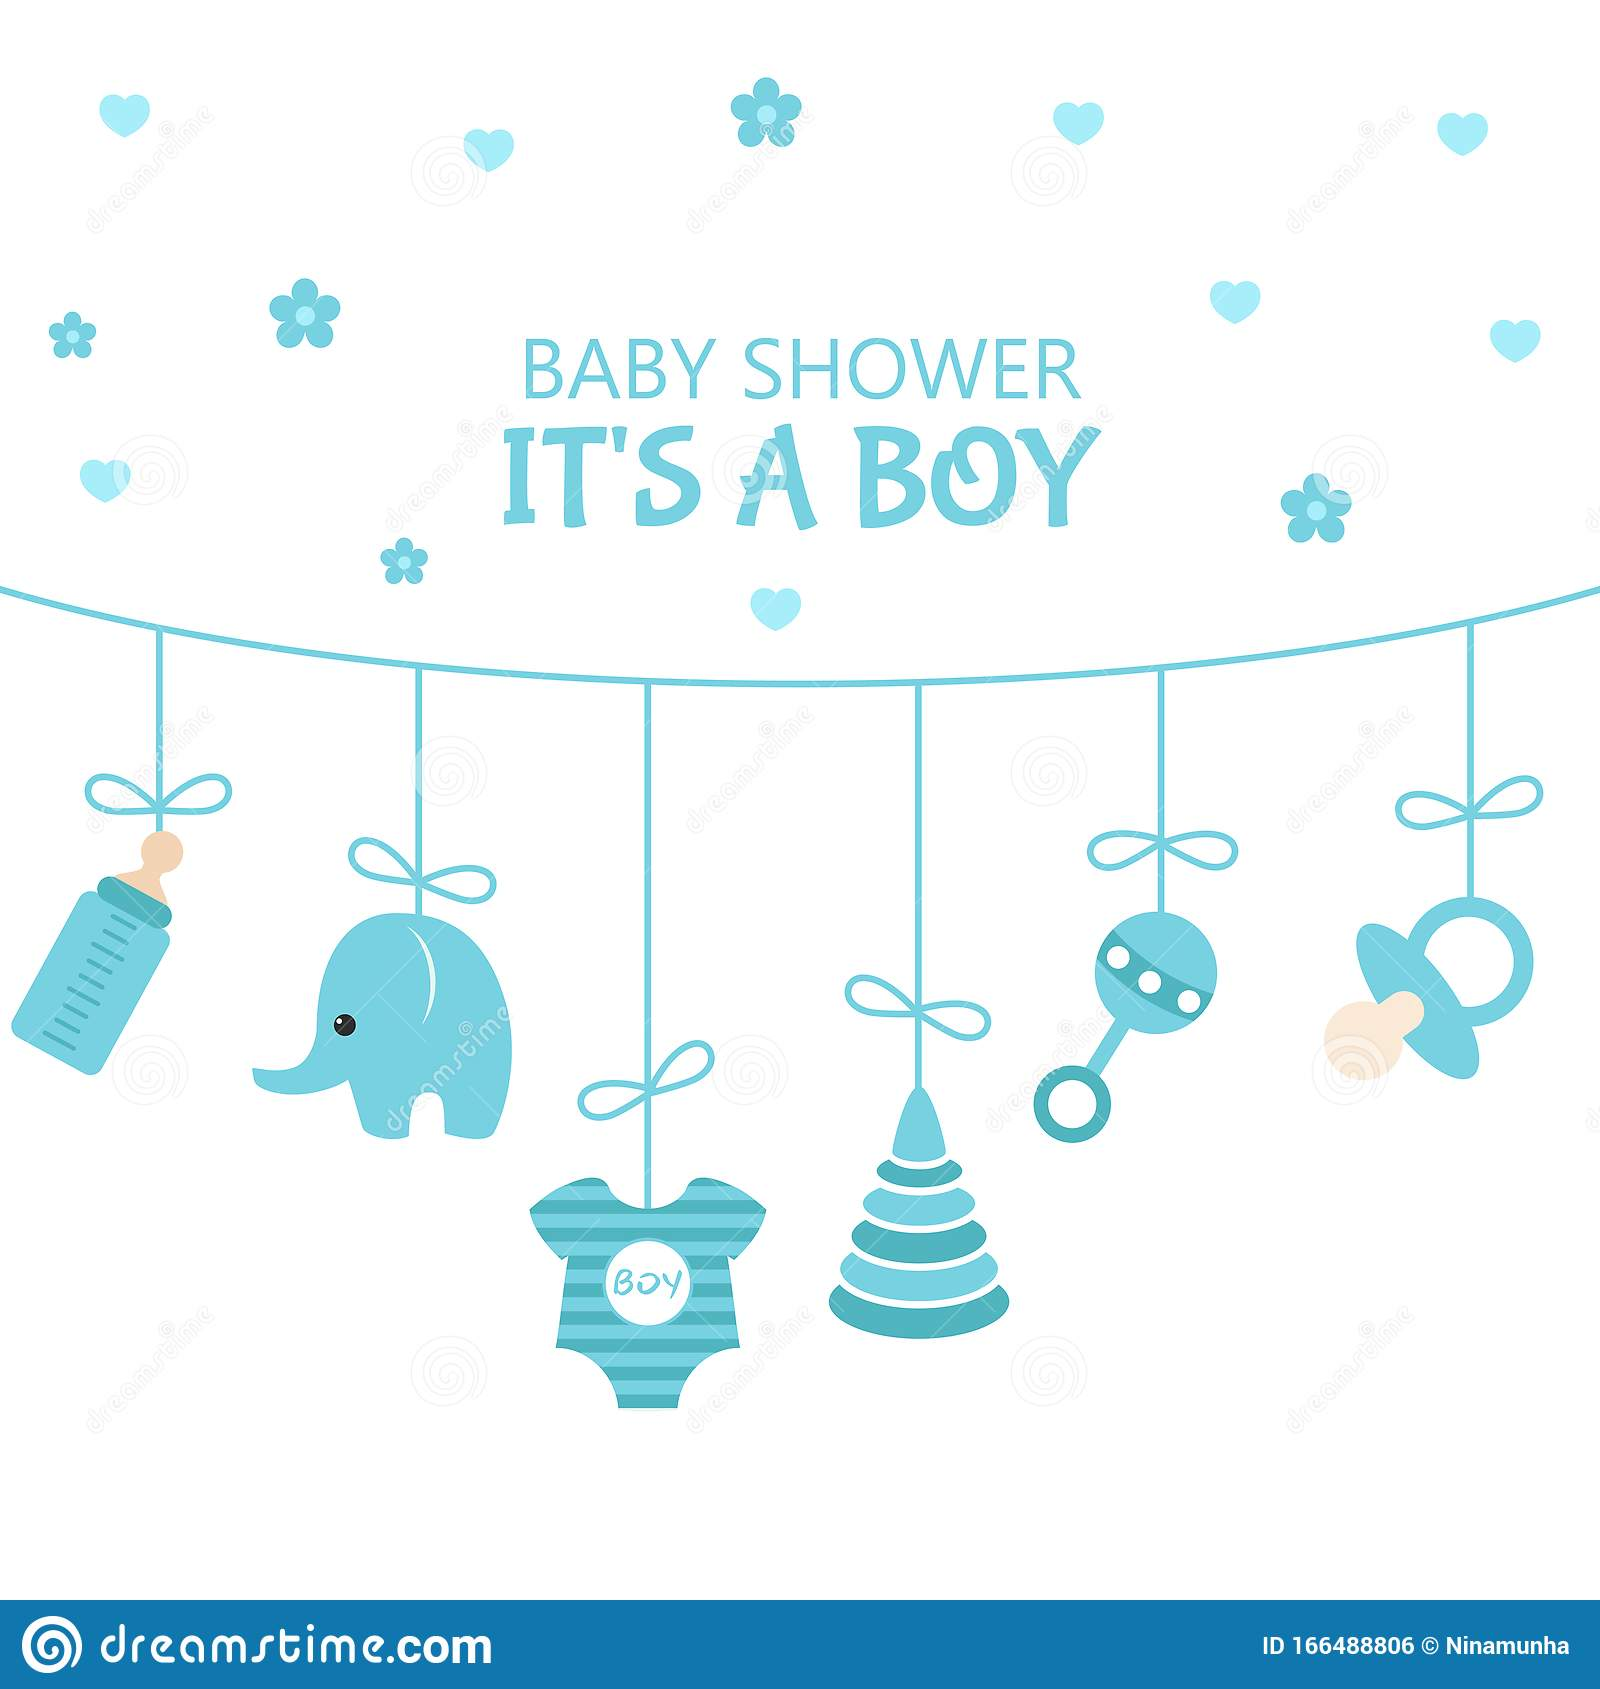 Baby Shower Invitation Card Stock Vector - Illustration of event